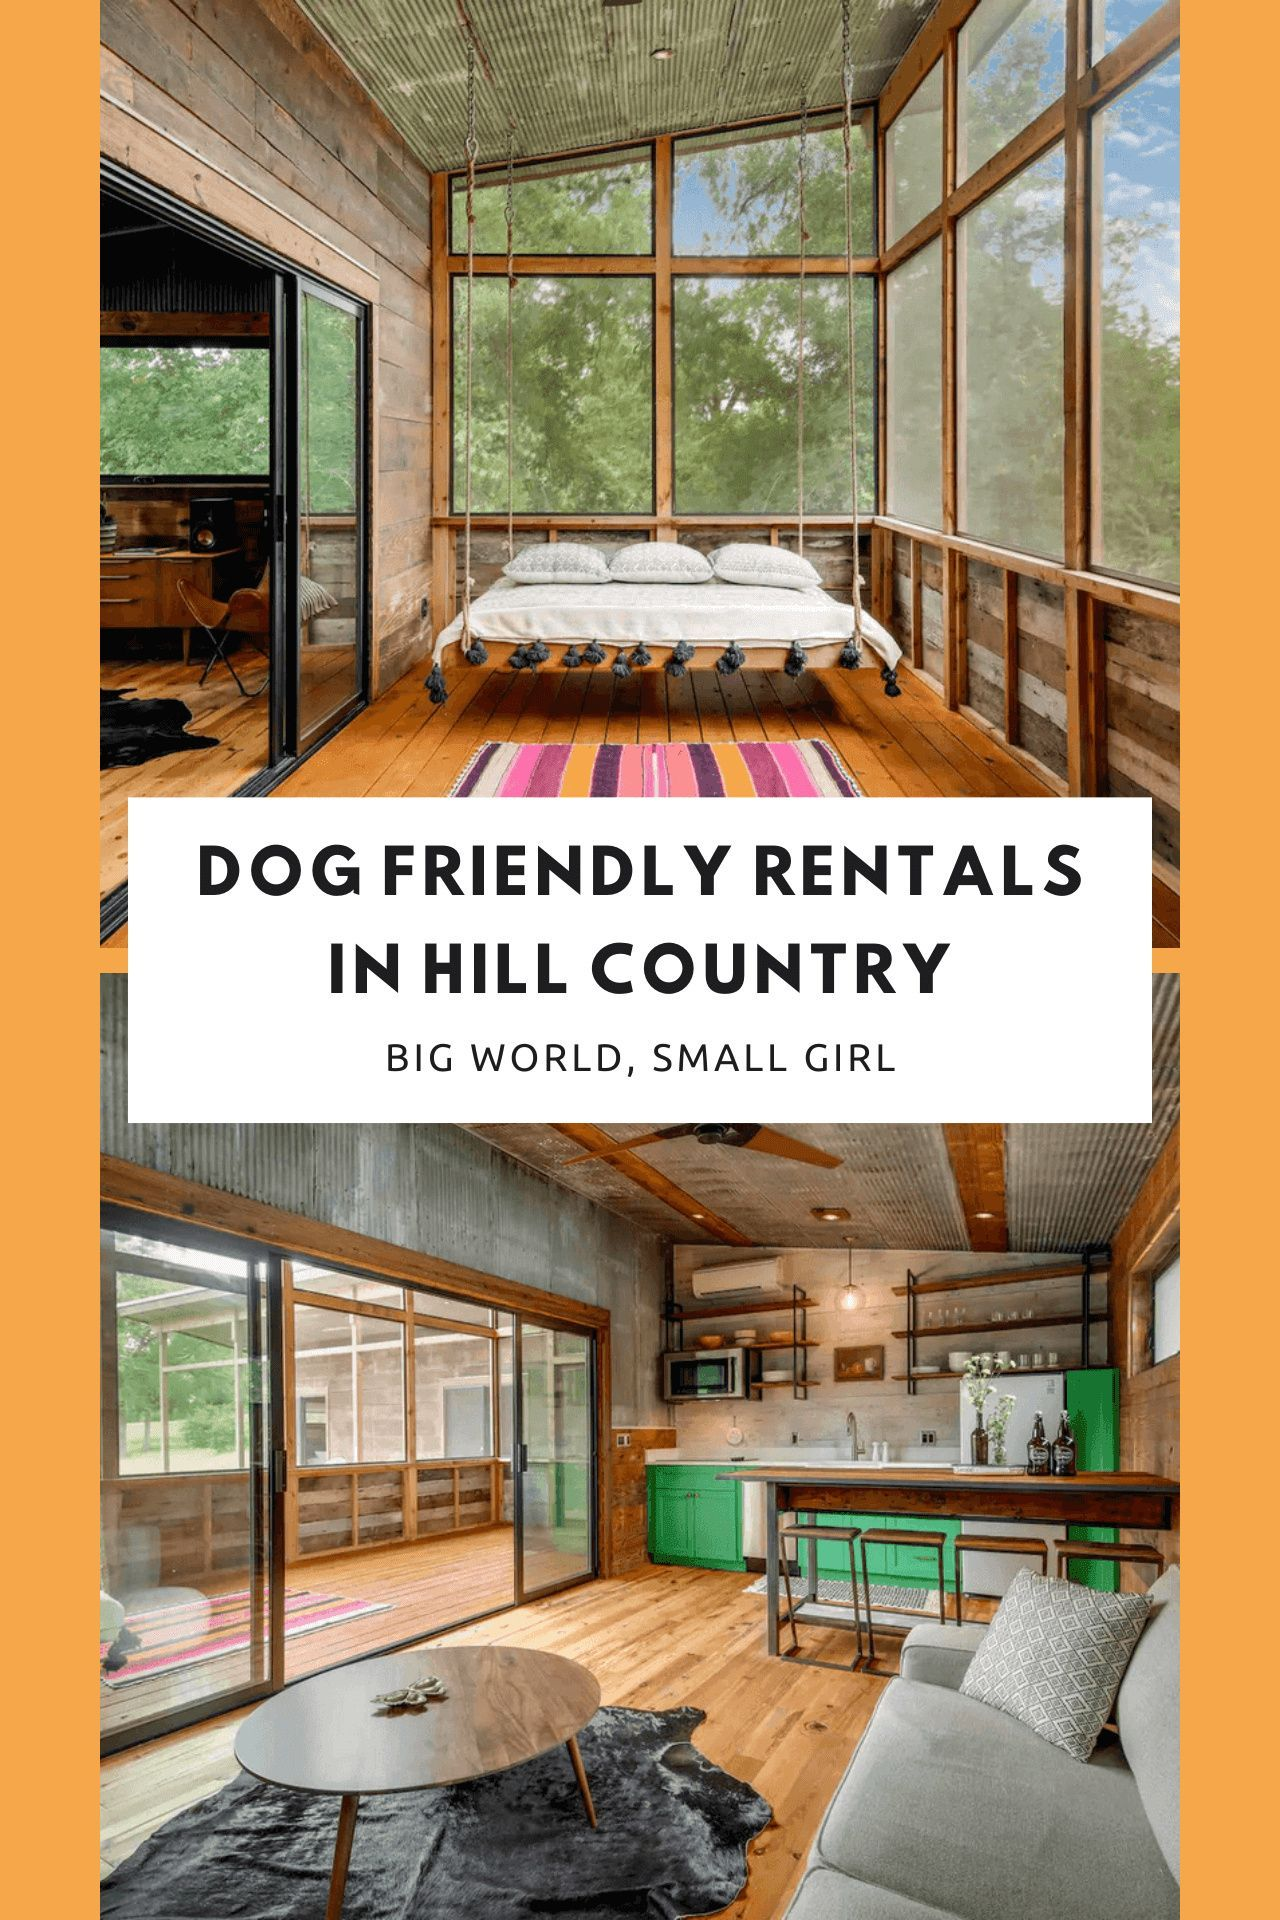 The Coolest Dog Friendly Rentals In Texas Hill Country In 2021 Dog Friendly Rentals Dog Friends Hill Country